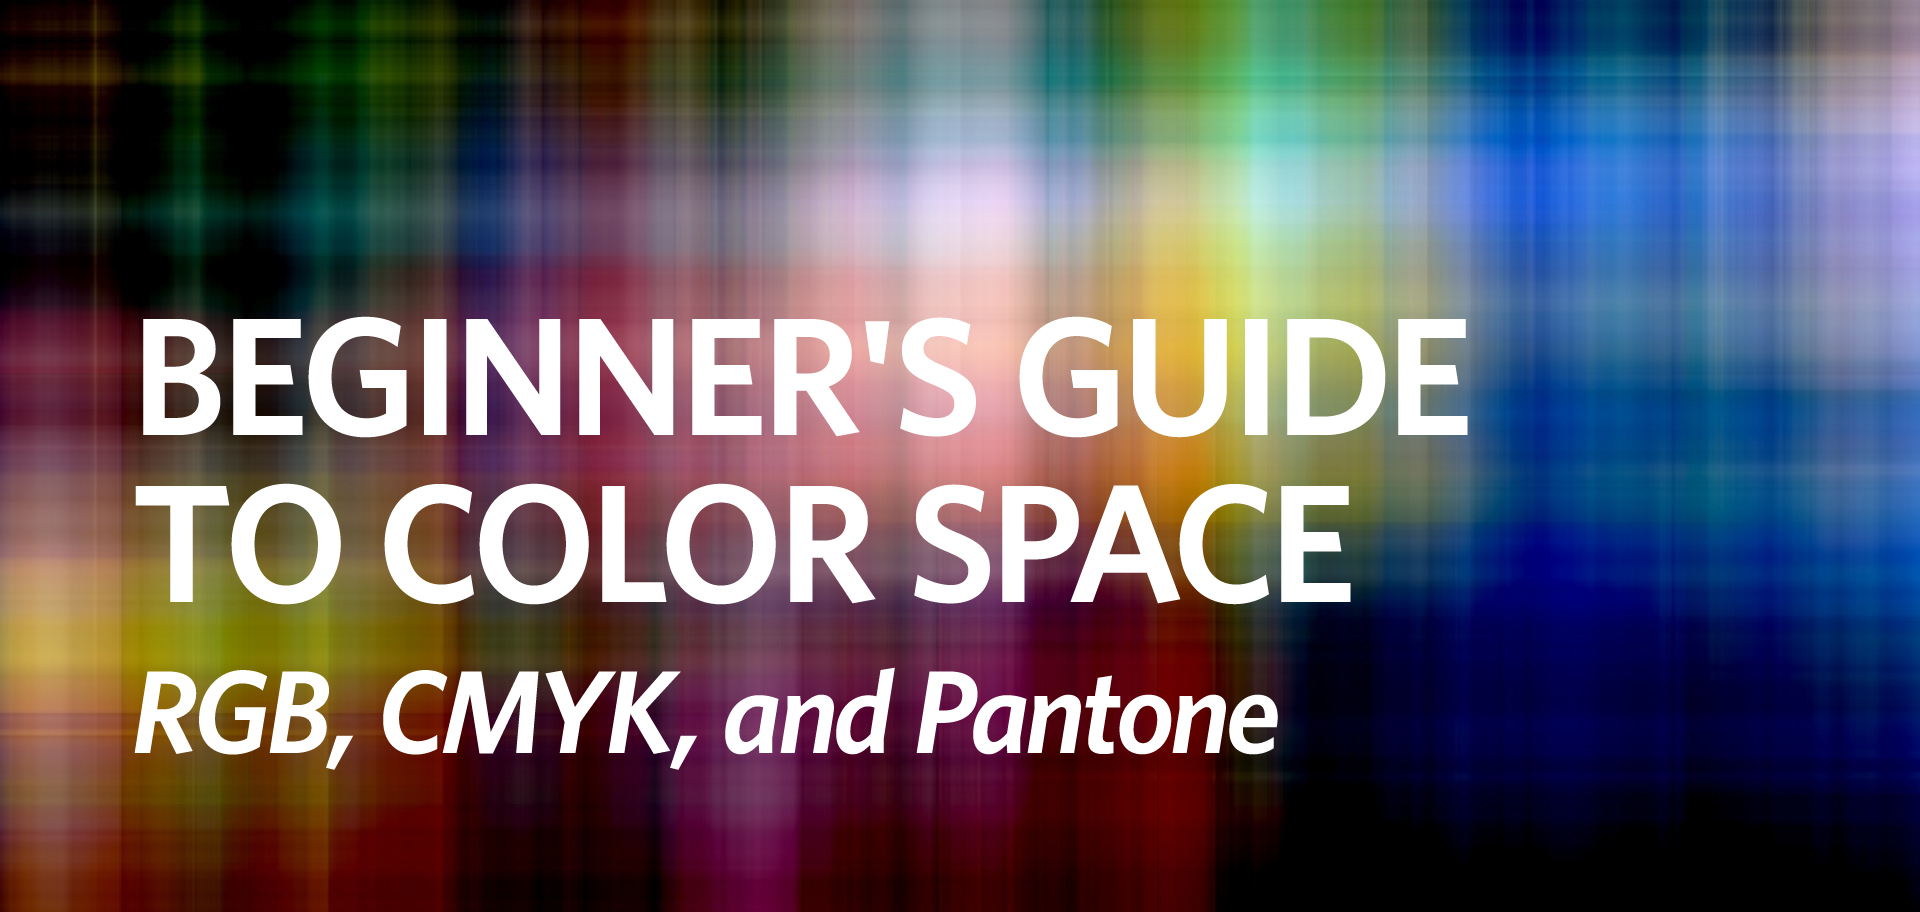 Beginners guide to color space rgb cmyk and pantone color space rgb cmyk pantone kettle fire creative color space beginner8217s guide nvjuhfo Images